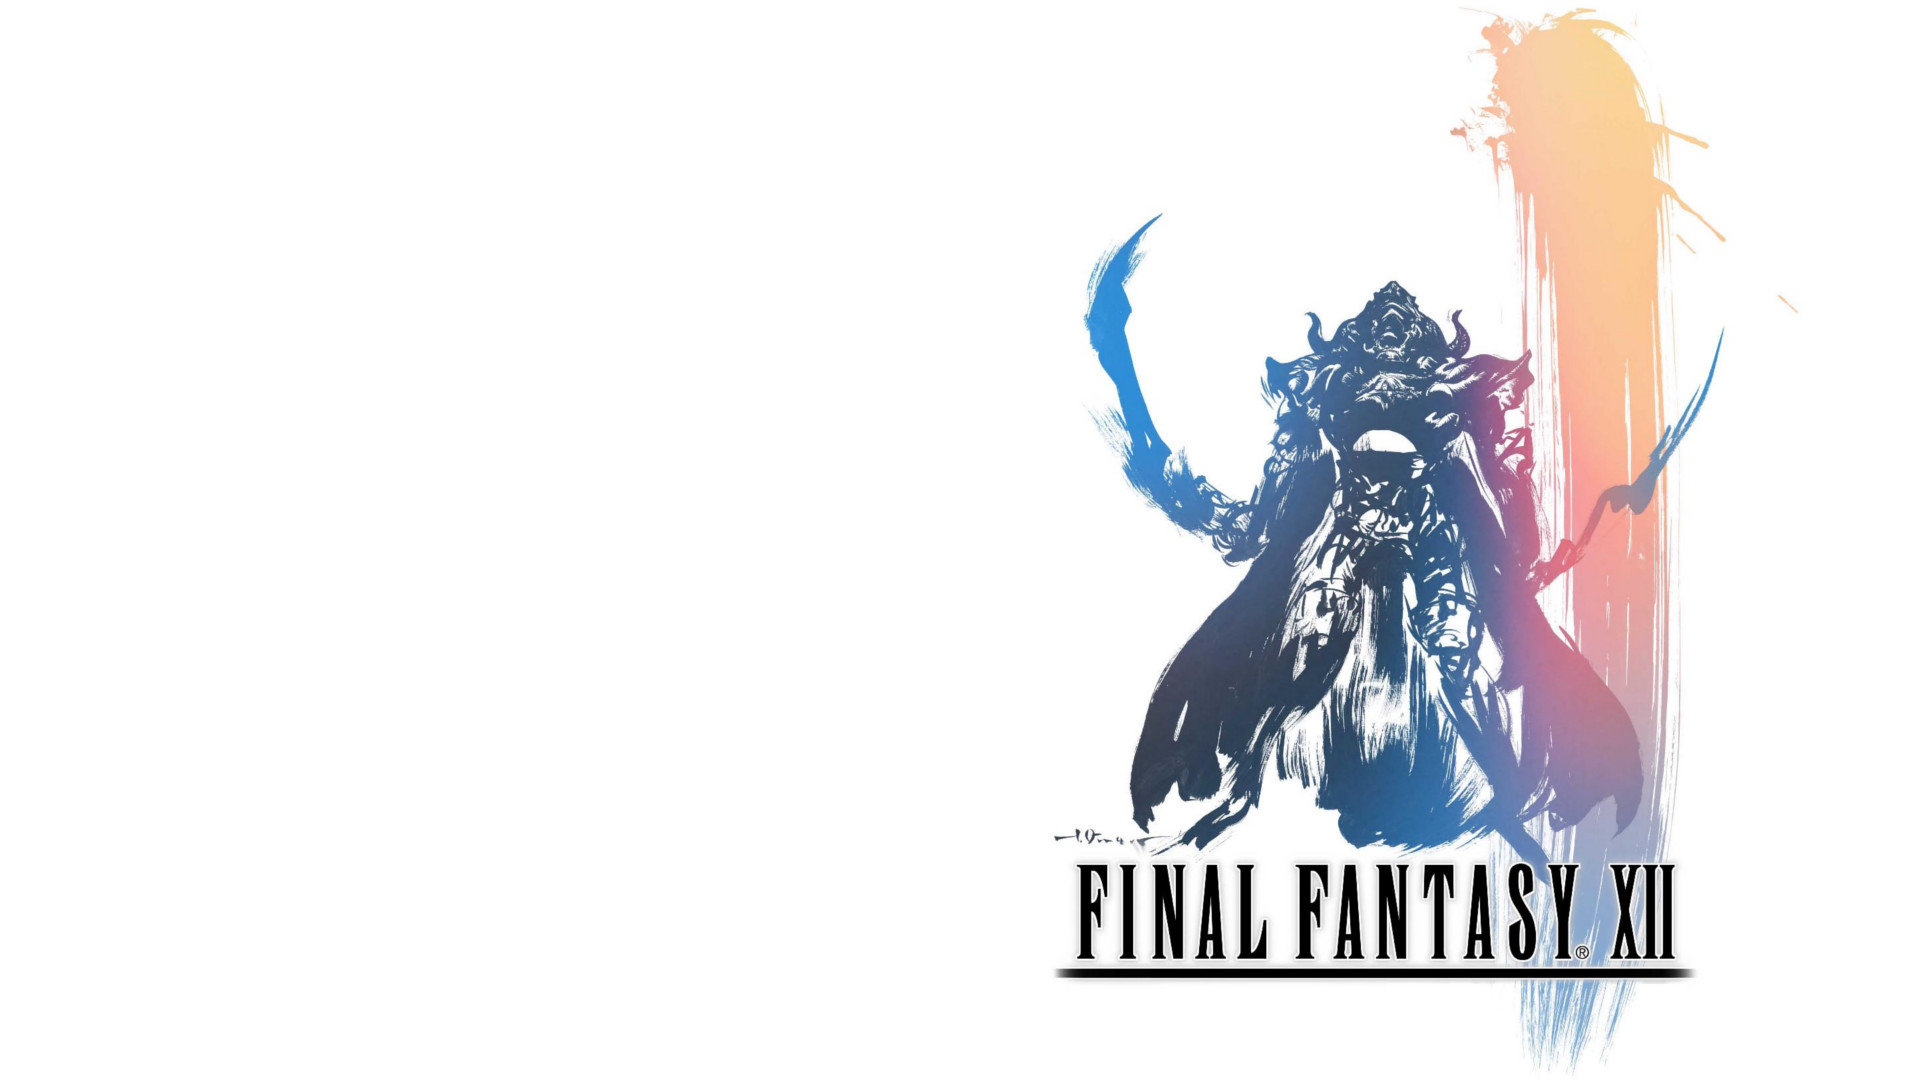 Final Fantasy Xii Ff12 Wallpapers 1920x1080 Full Hd 1080p